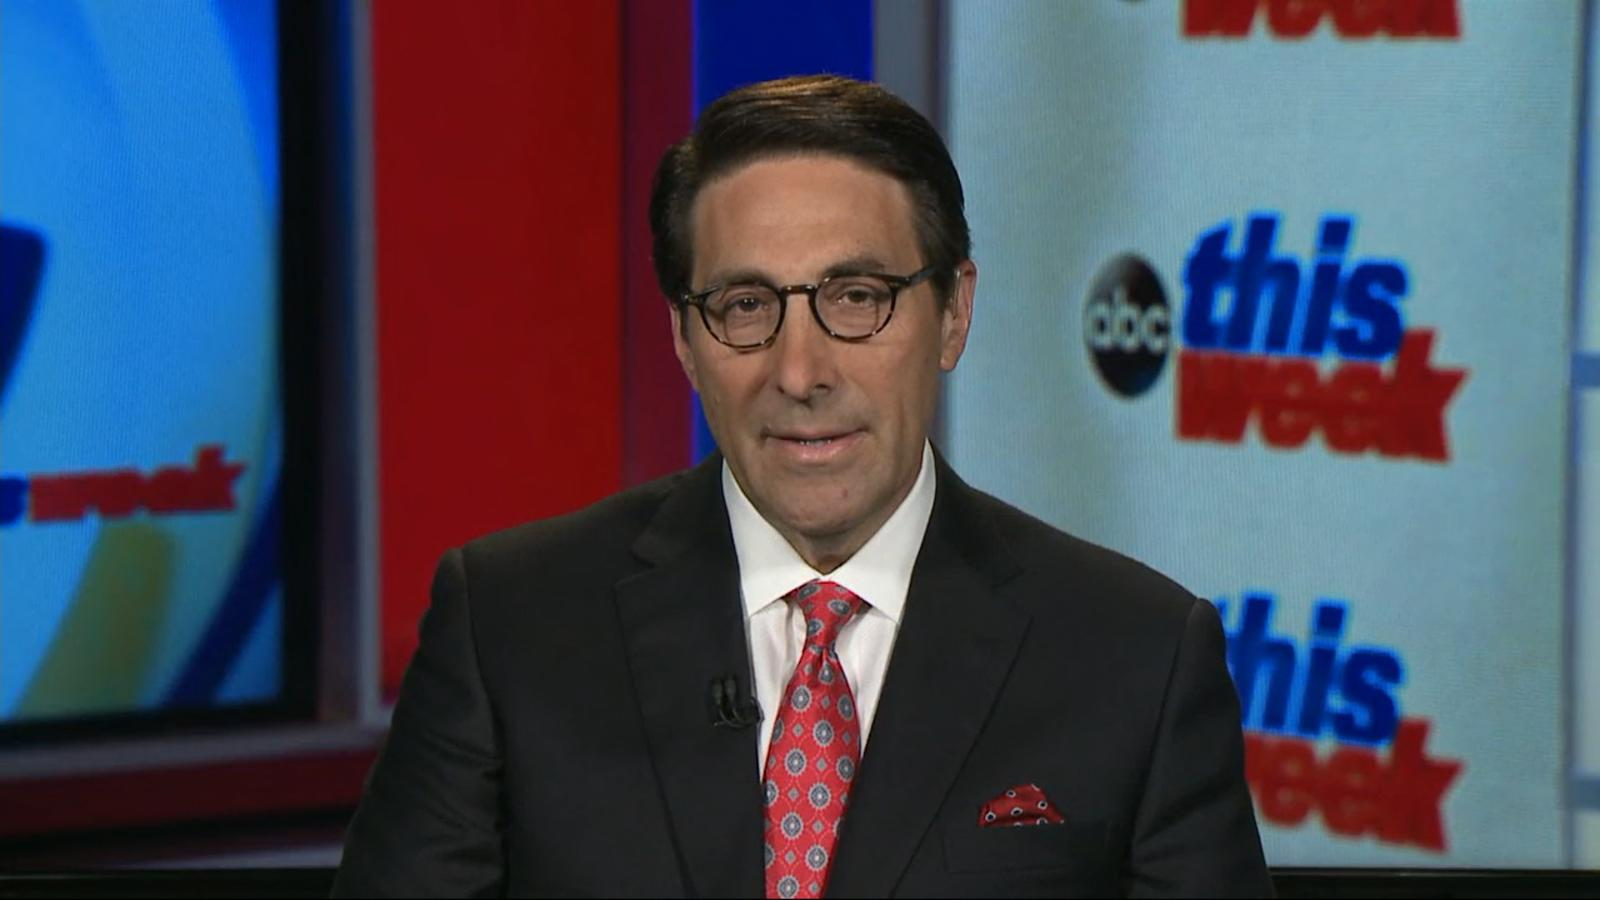 Image result for Jay Sekulow, photos, abc this week photo